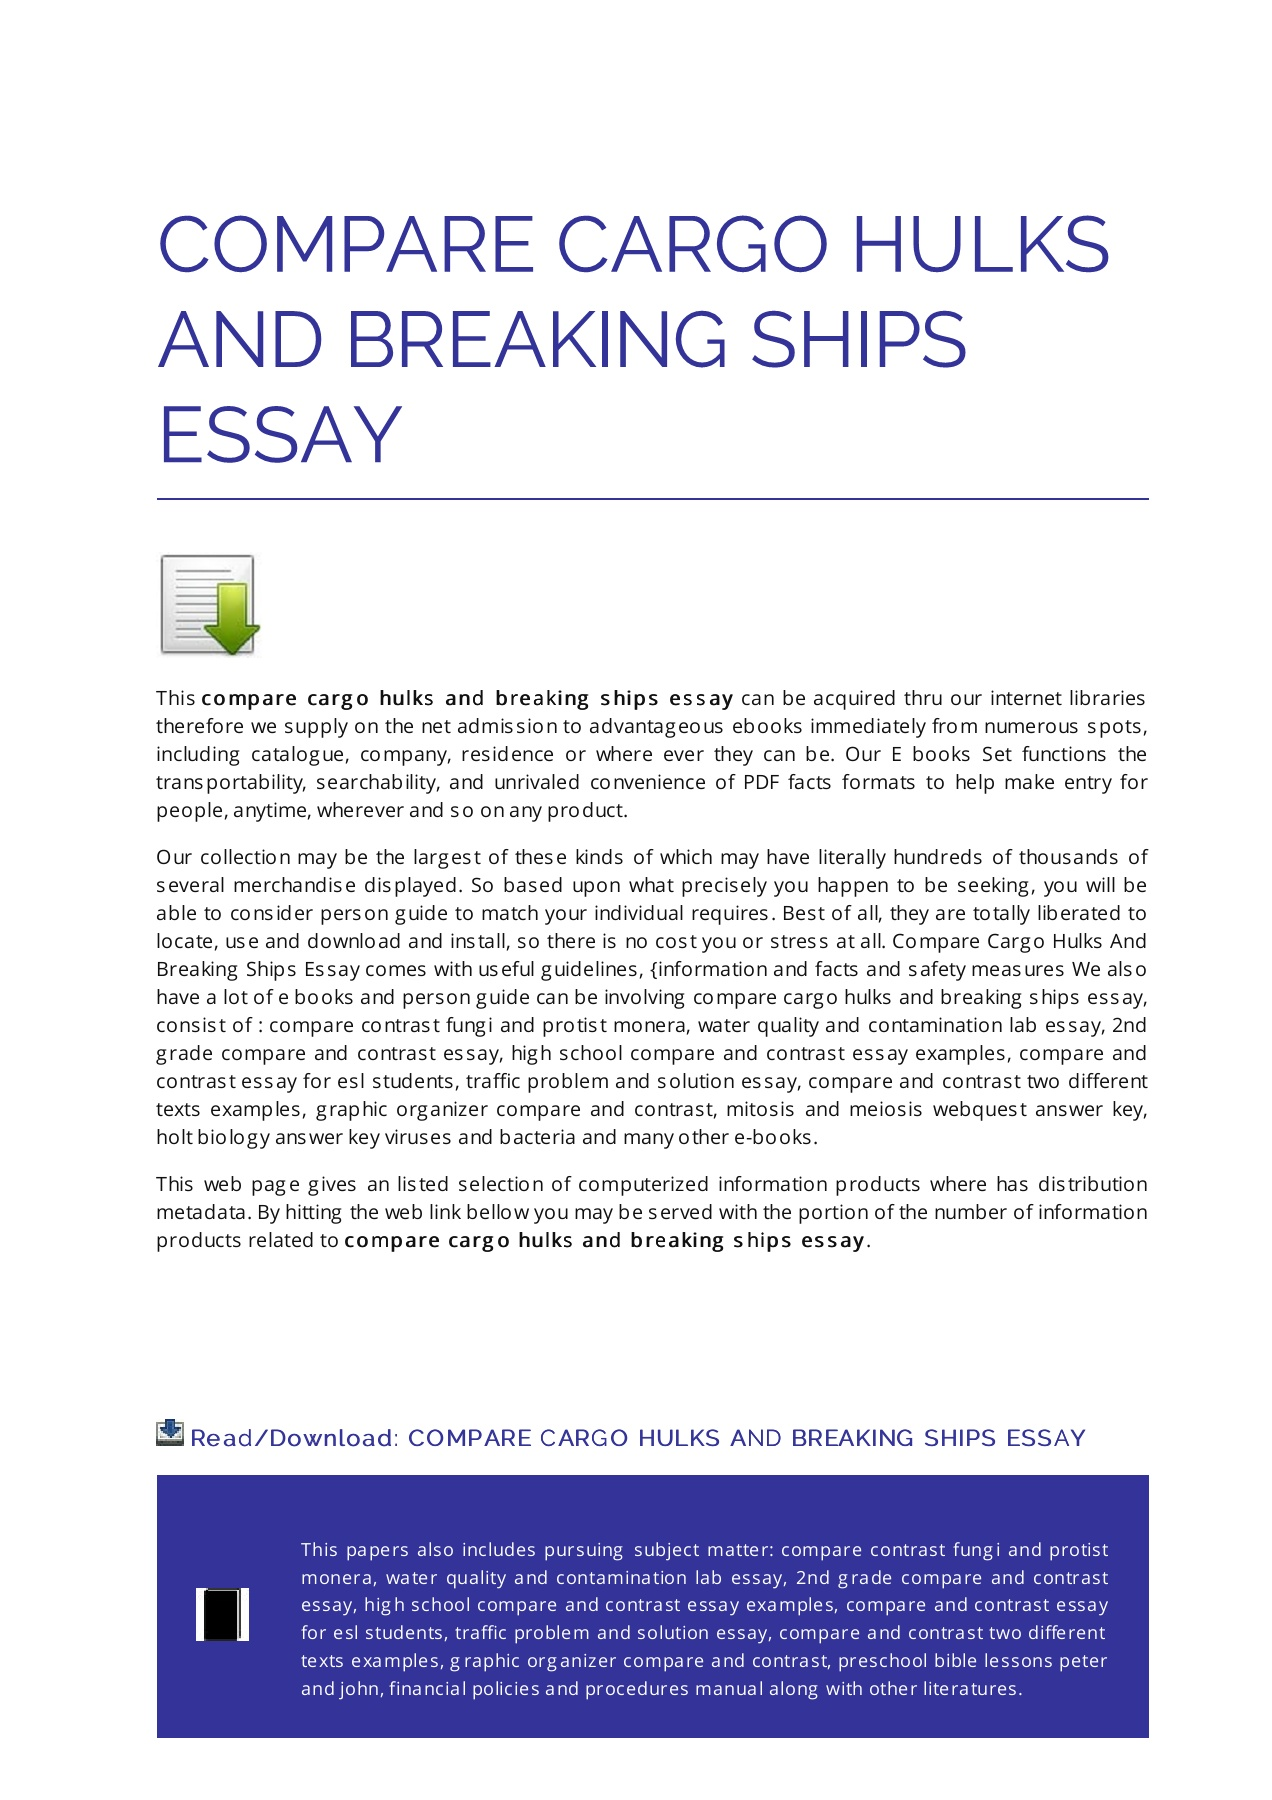 Compare And Contrast Essay Example For College Compare Cargo Hulks And Breaking Ships Essay Pages 1 6 Text